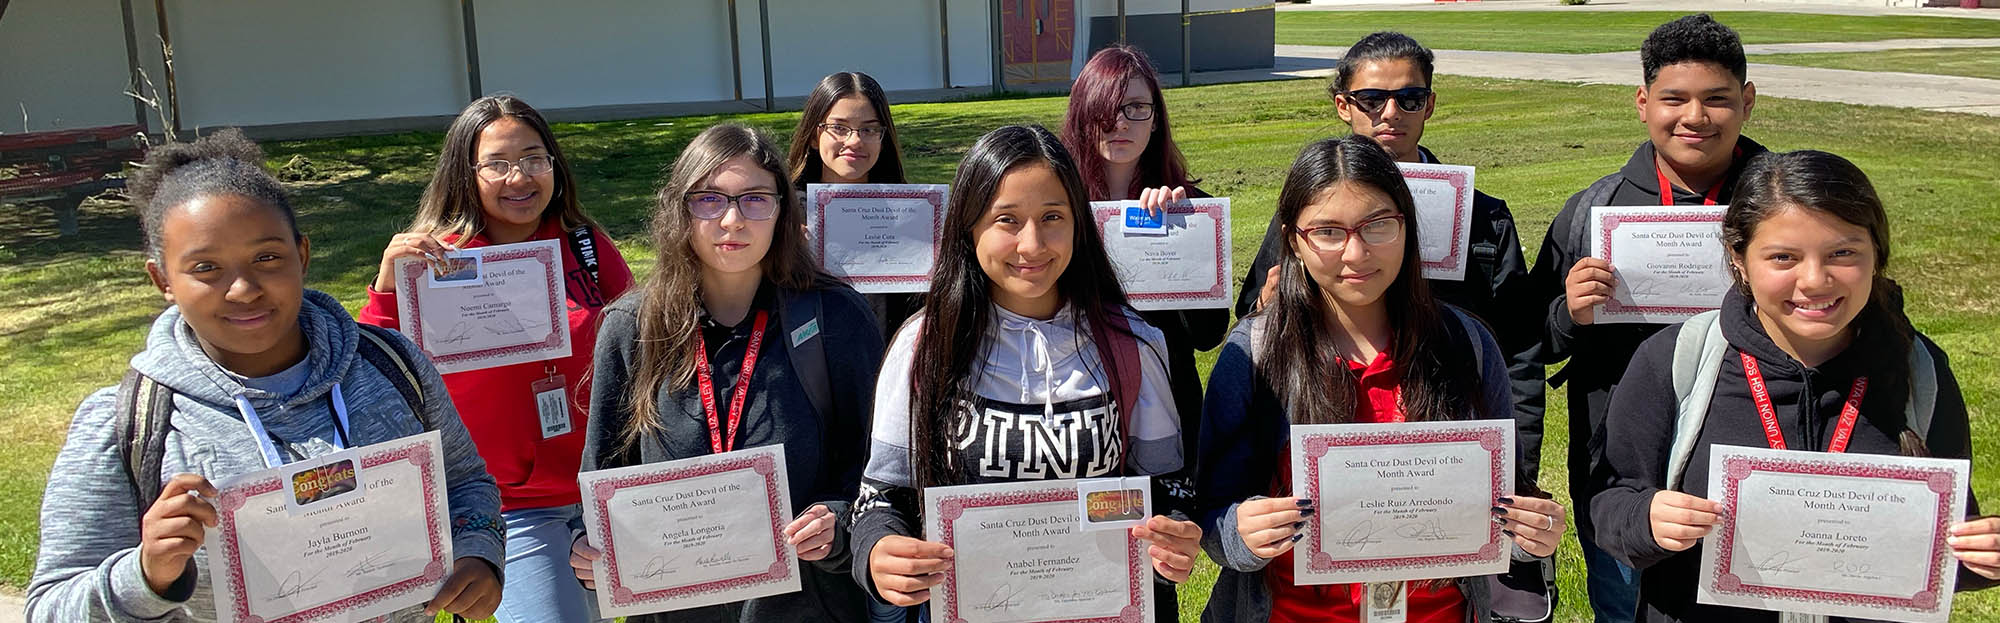 Proud Santa Cruz Valley students posing for a picture with their awards